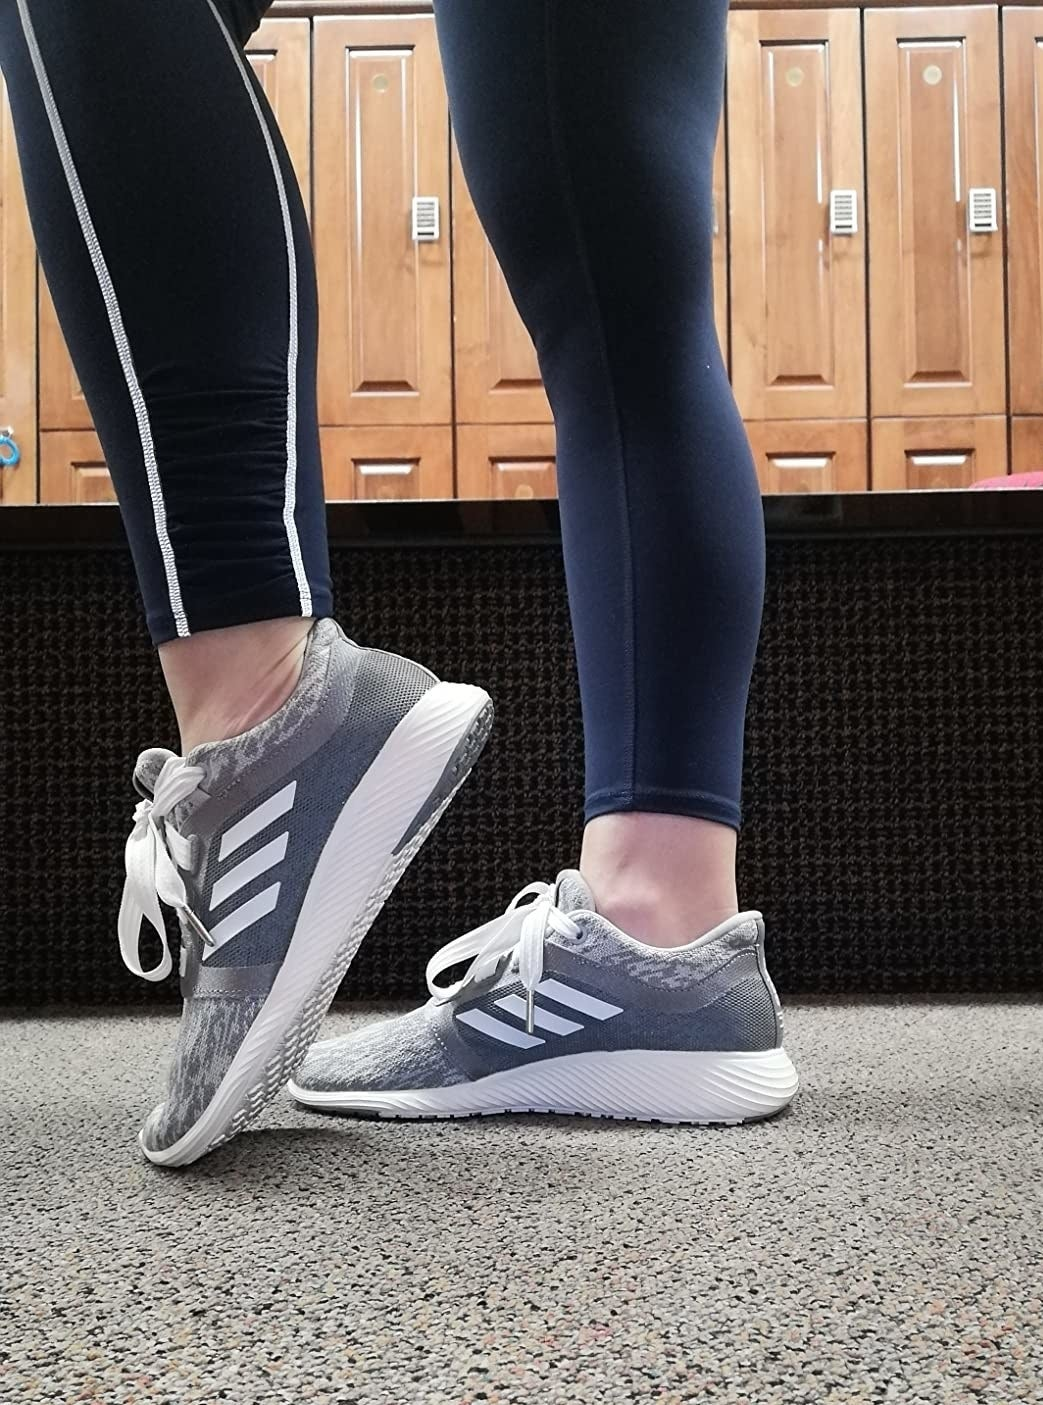 Reviewer wearing Adidas Edge Lux Clima running shoes